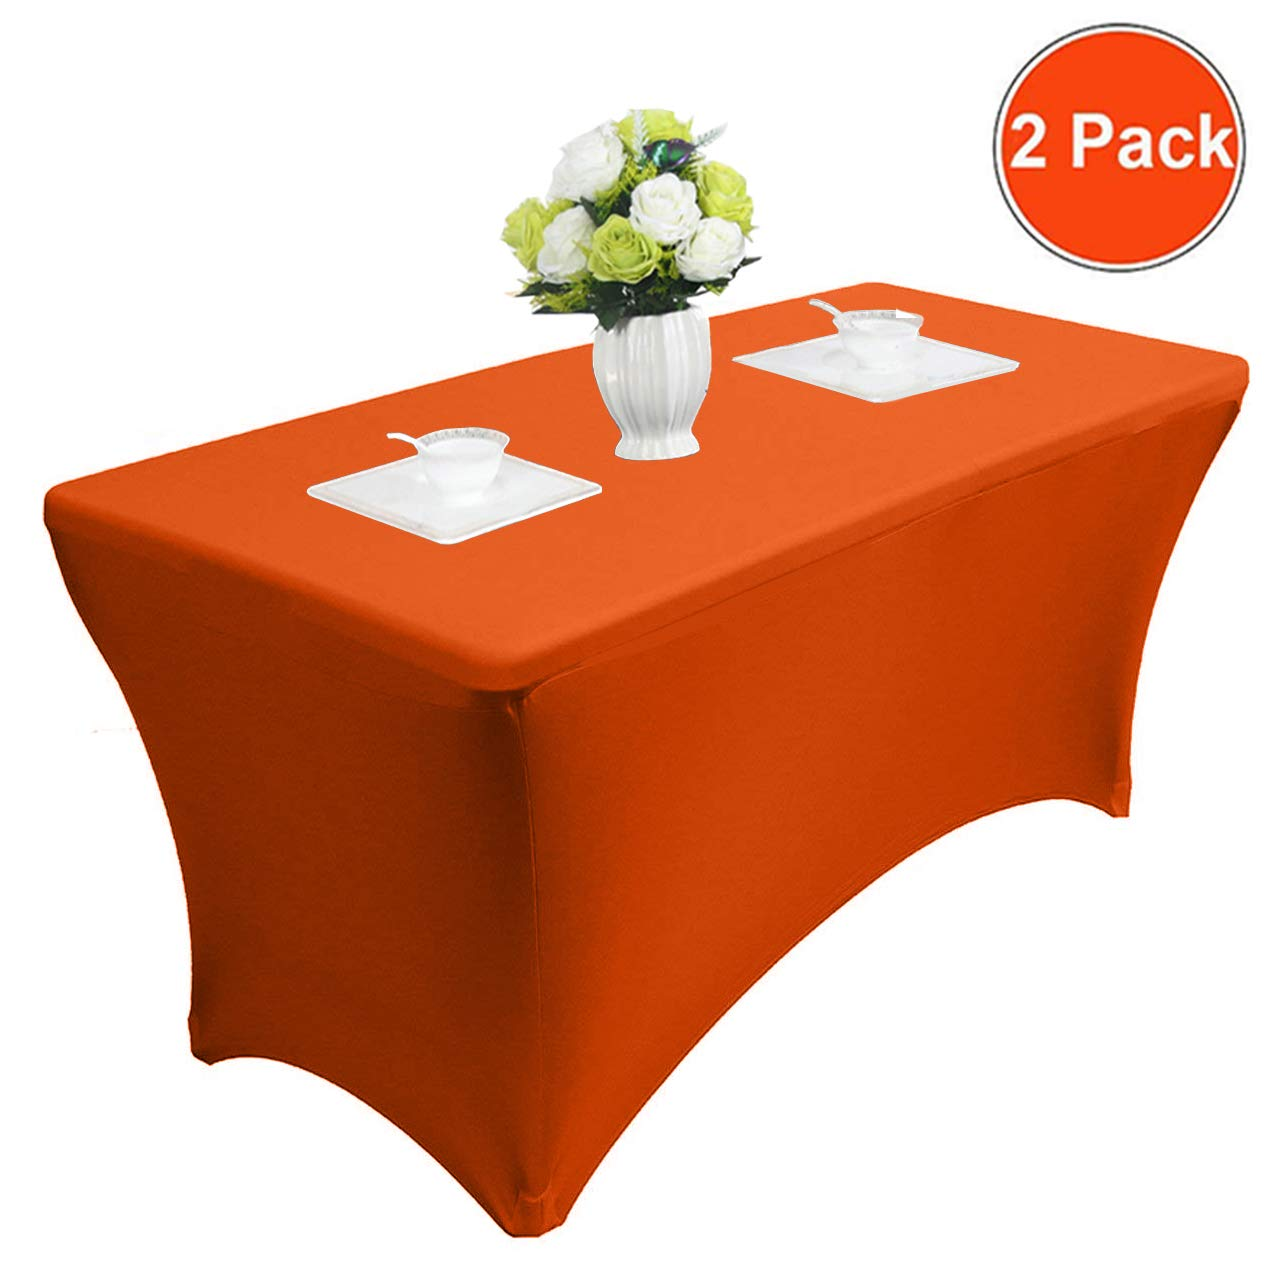 Reliancer 4\6\8FT Rectangular Spandex Table Cover Four-Way Tight Fitted Stretch Tablecloth Table Cloth for Outdoor Party DJ Tradeshows Banquet Vendors Weddings Celebrations 4FT,Blue